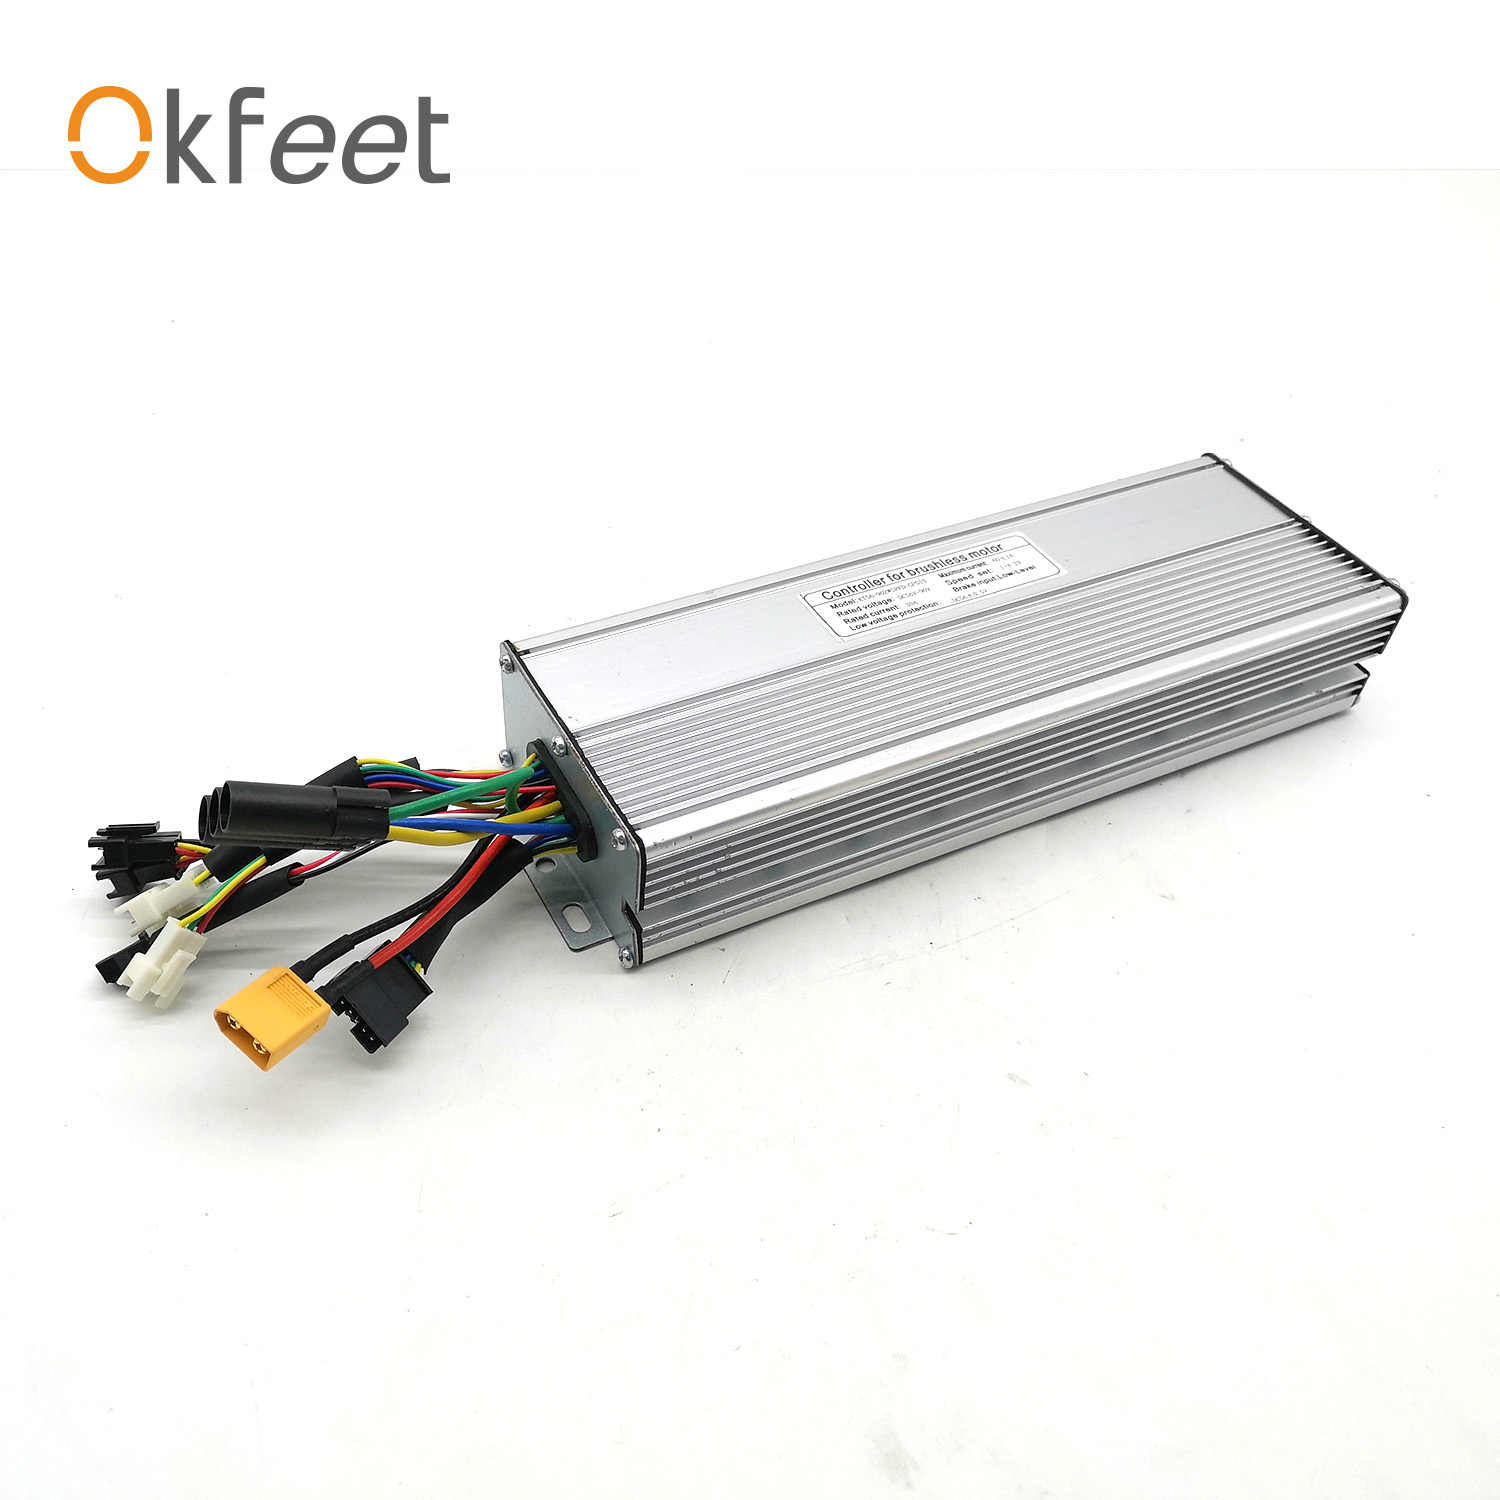 okfeet 56V-90V 60A Electric Bicycle Controller  KT Ebike 72V 3000W Controller 2000W 3000W  Motor Conversion Kit